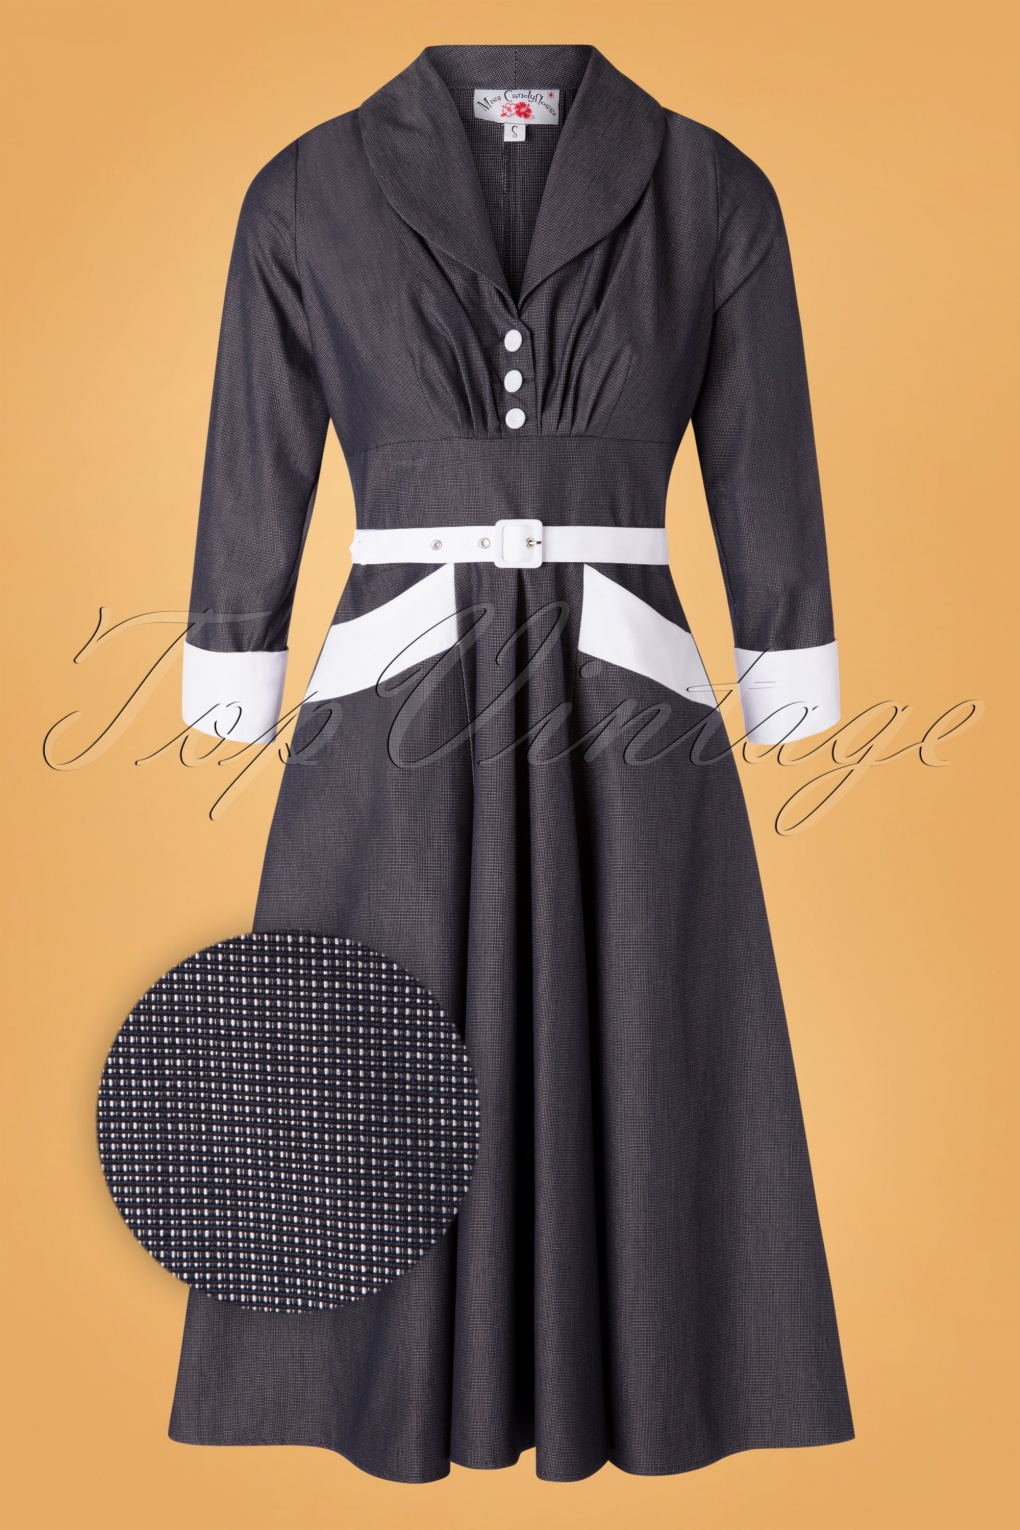 Fifties Dresses : 1950s Style Swing to Wiggle Dresses 50s Rosaleen Lee Swing Dress in Navy and White £97.70 AT vintagedancer.com